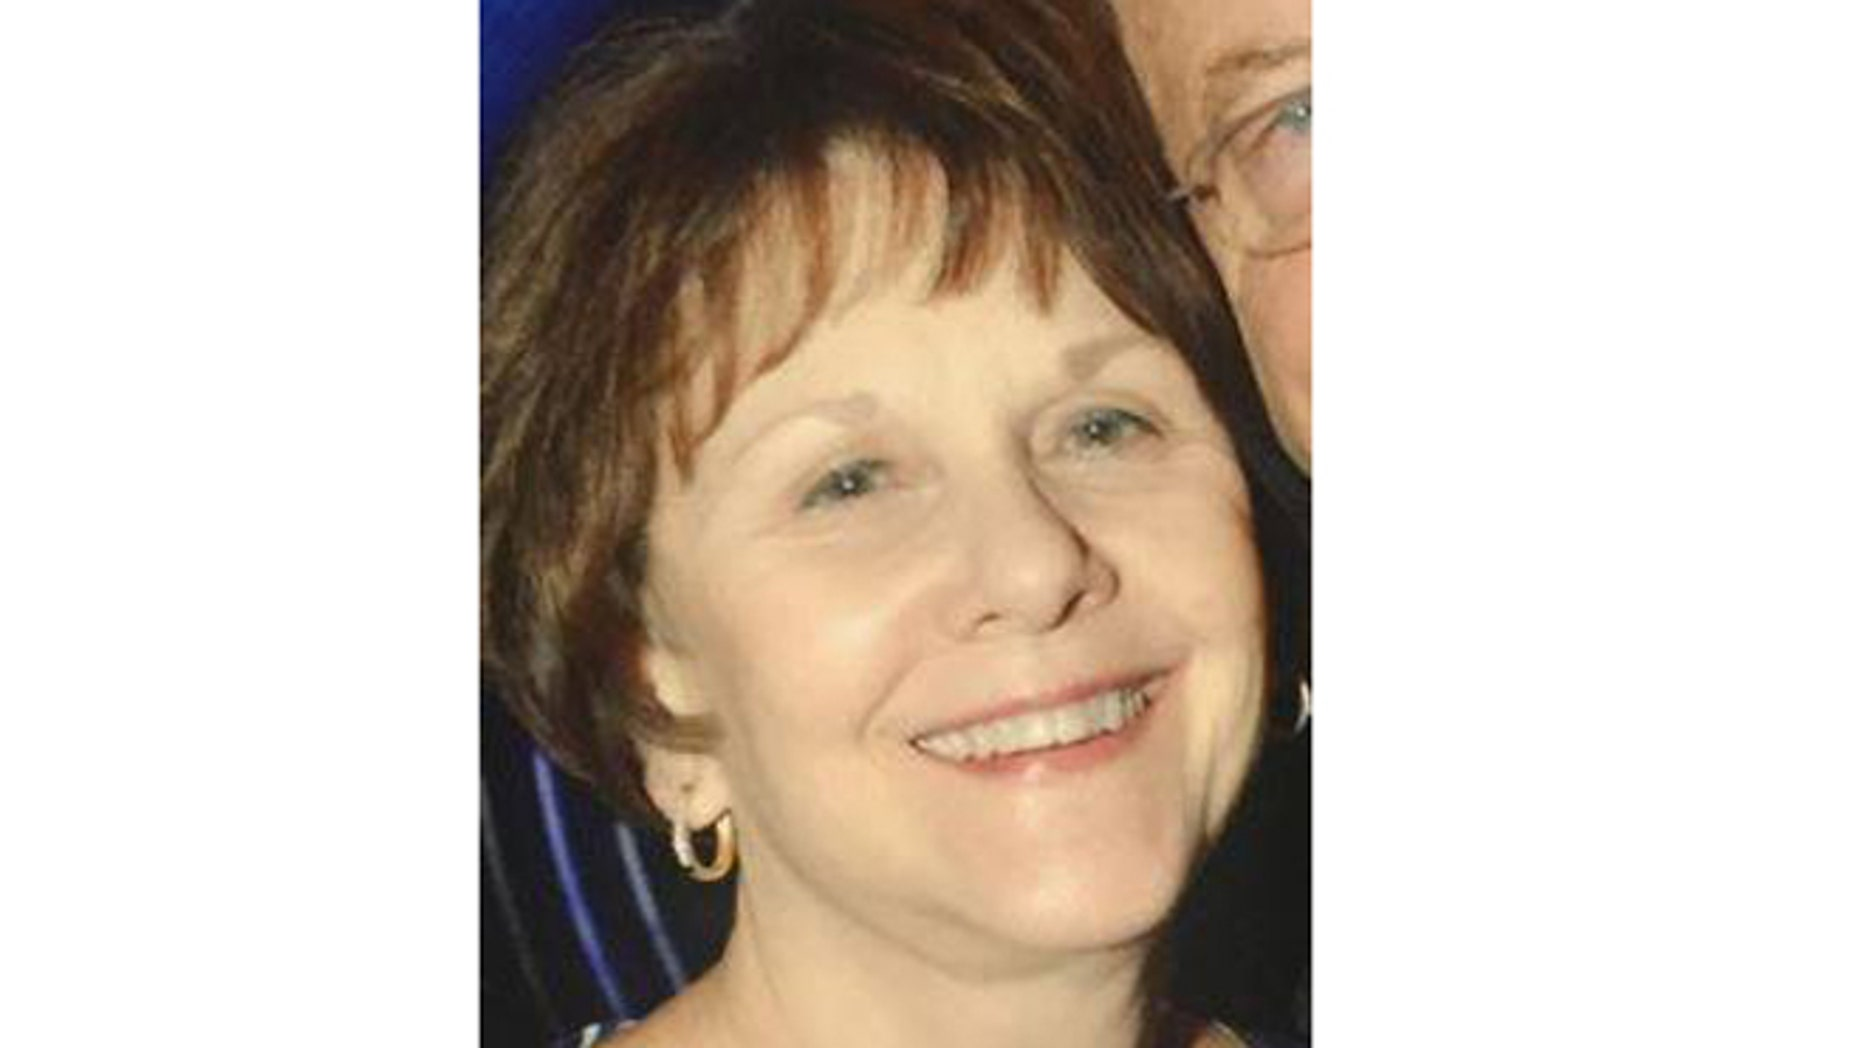 Police say Sandra Harris, 69, of Kennewick, was taken from her home against her will.